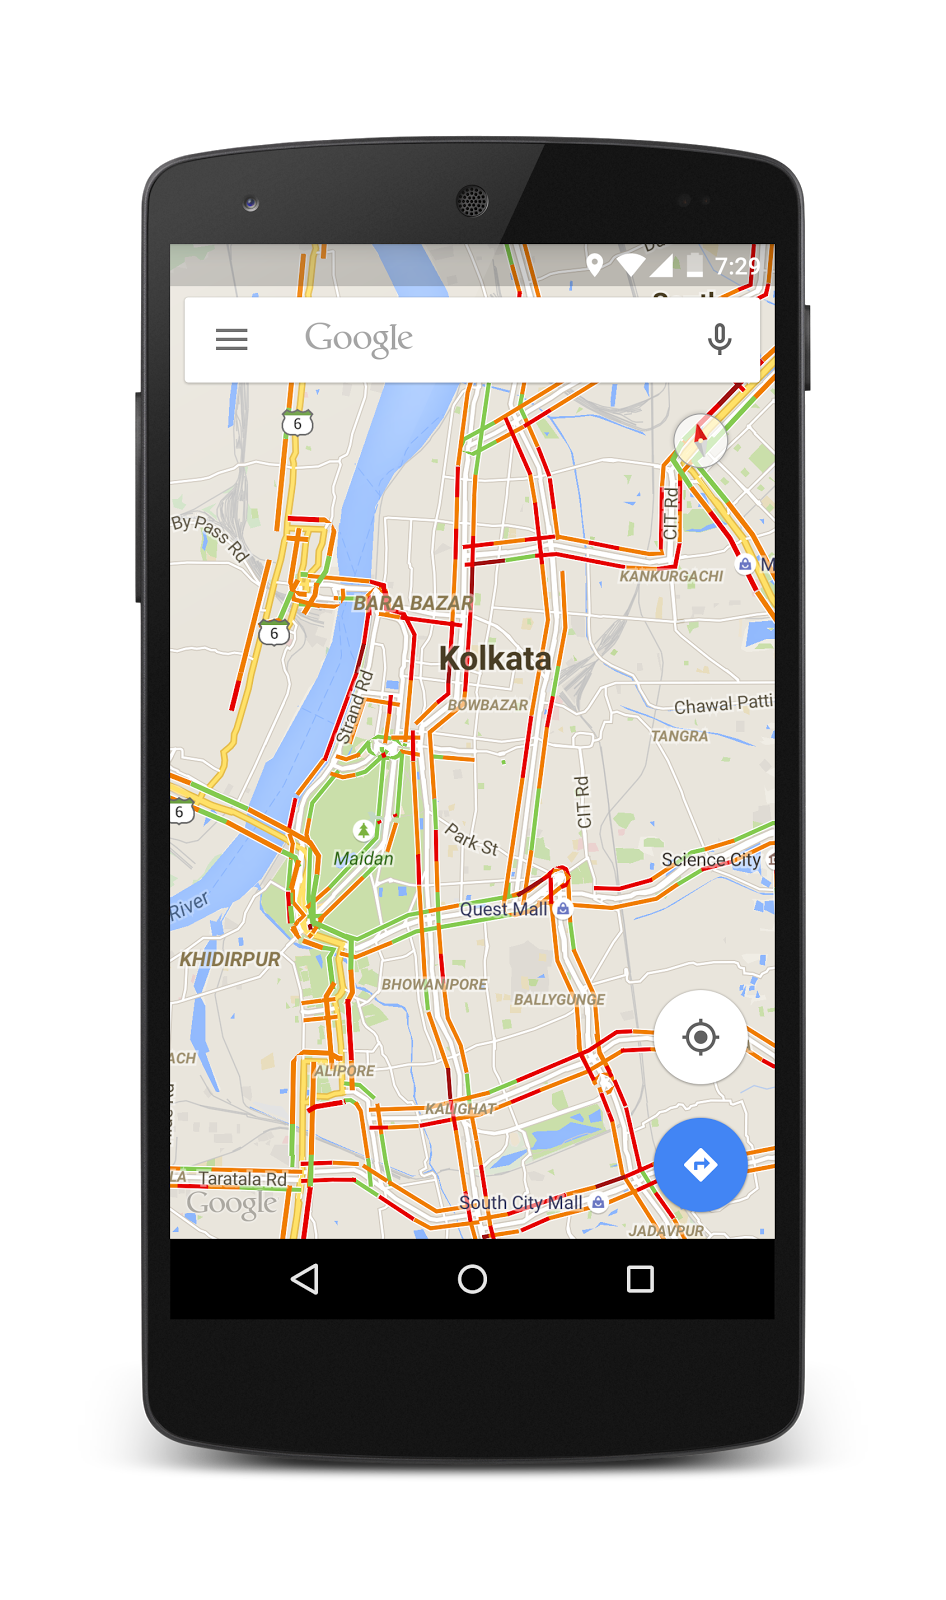 Google Maps Live Traffic Data Comes To Nagpur – NagpurTech on google maps the world live, google current traffic, 3d google earth live, google maps traffic cameras, google india map with city,